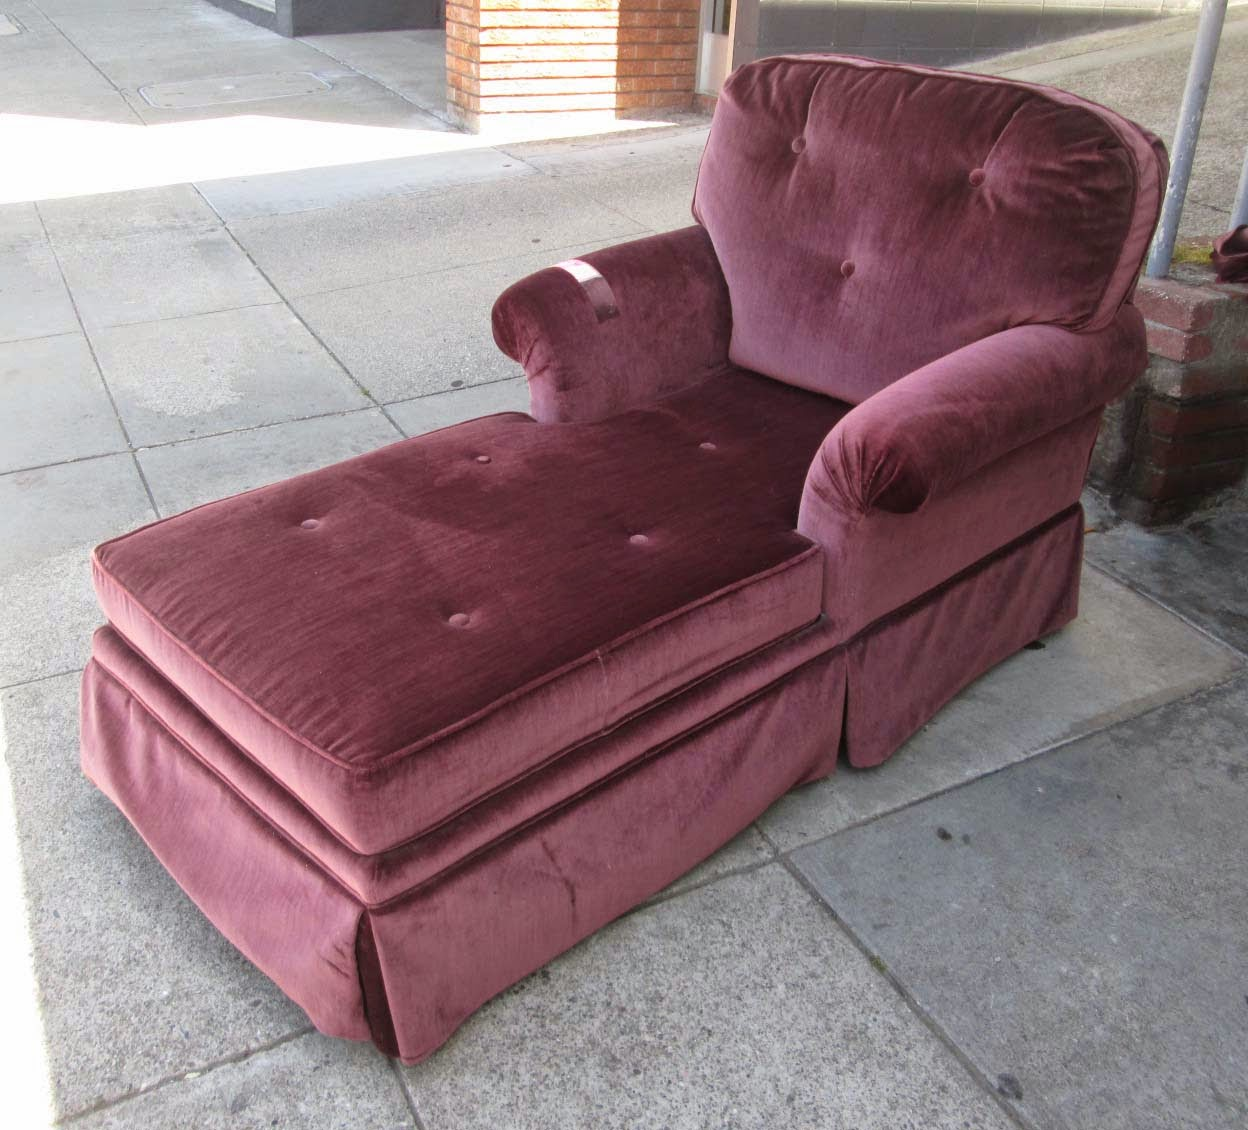 Uhuru furniture collectibles sold reduced burgundy for Burgundy chaise lounge